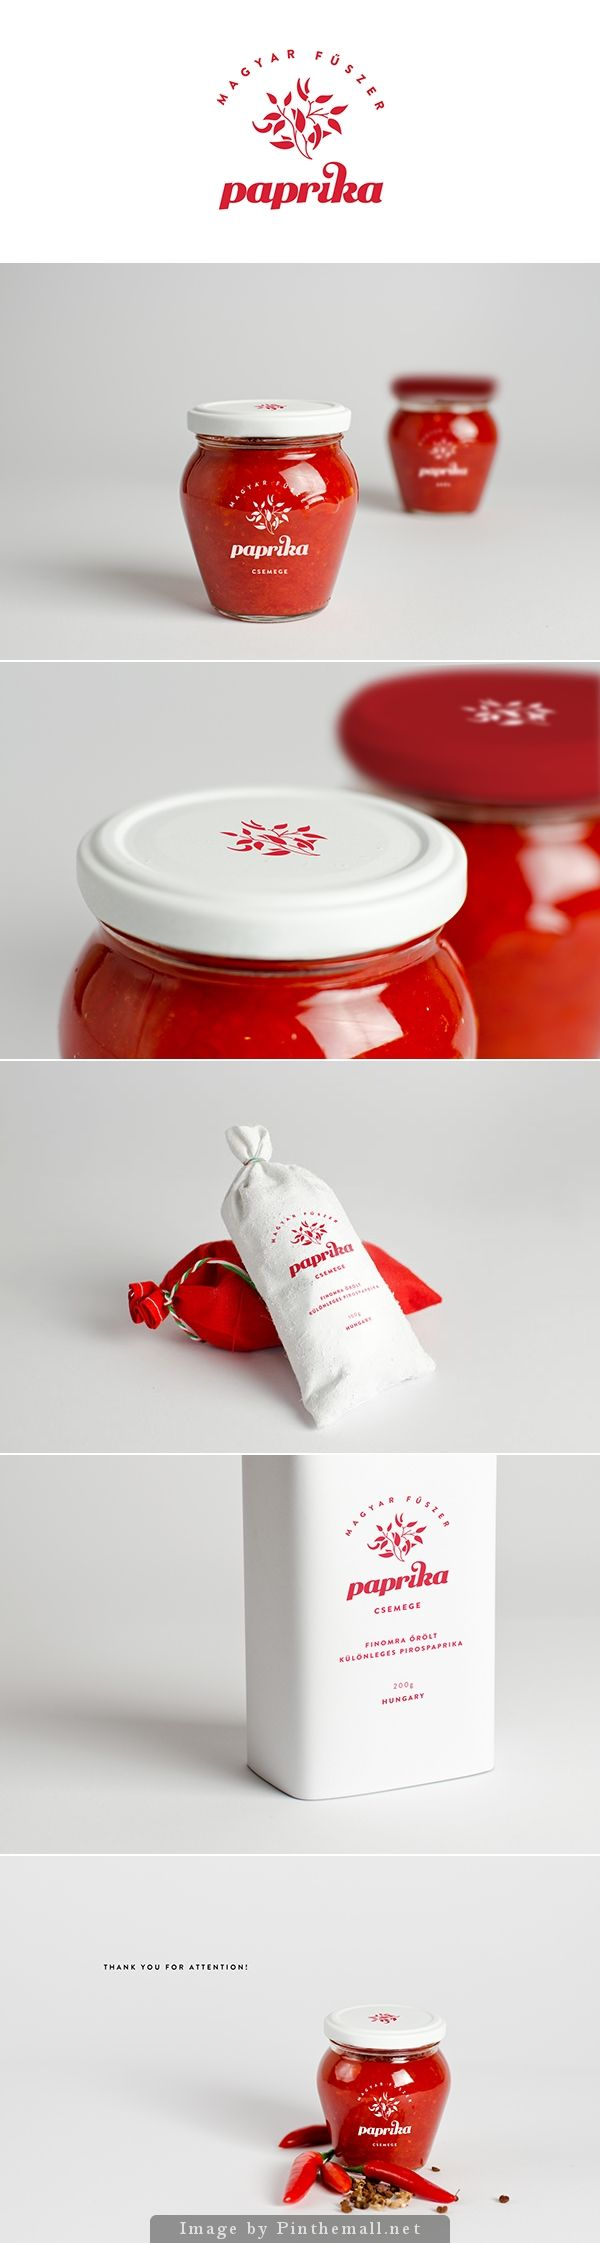 #branding #packaging #design